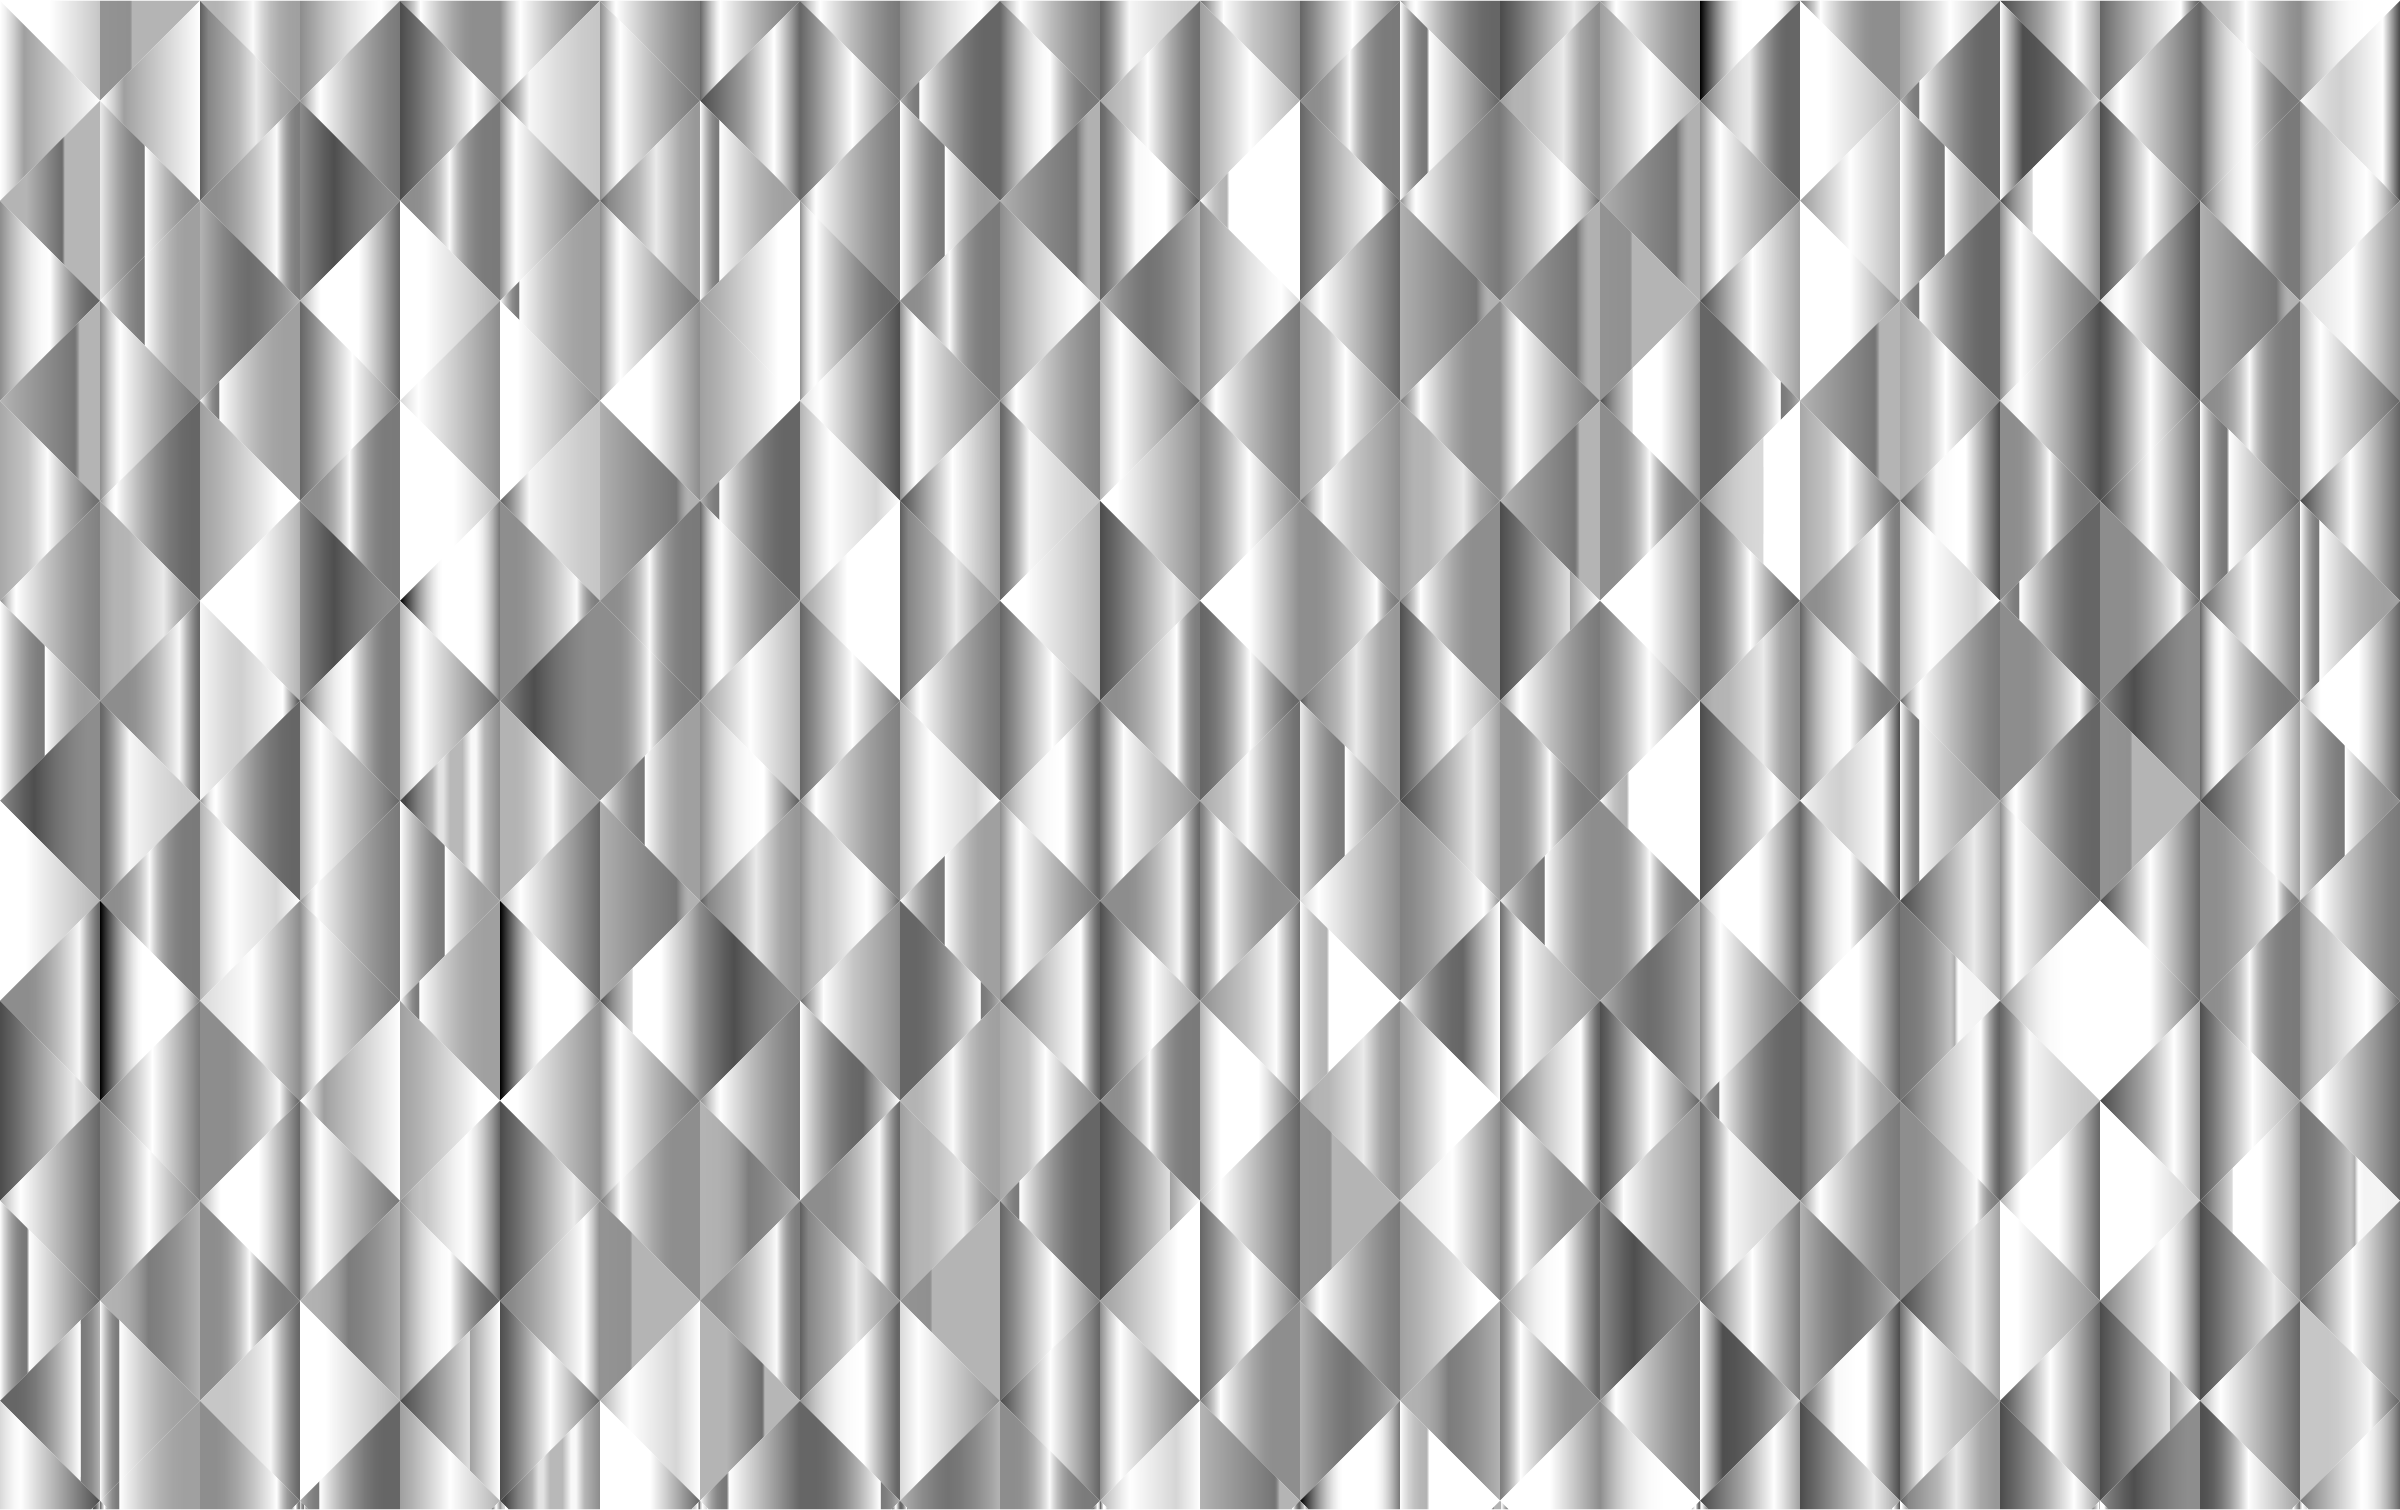 Prismatic Triangular Background Design Mark II 4 by GDJ